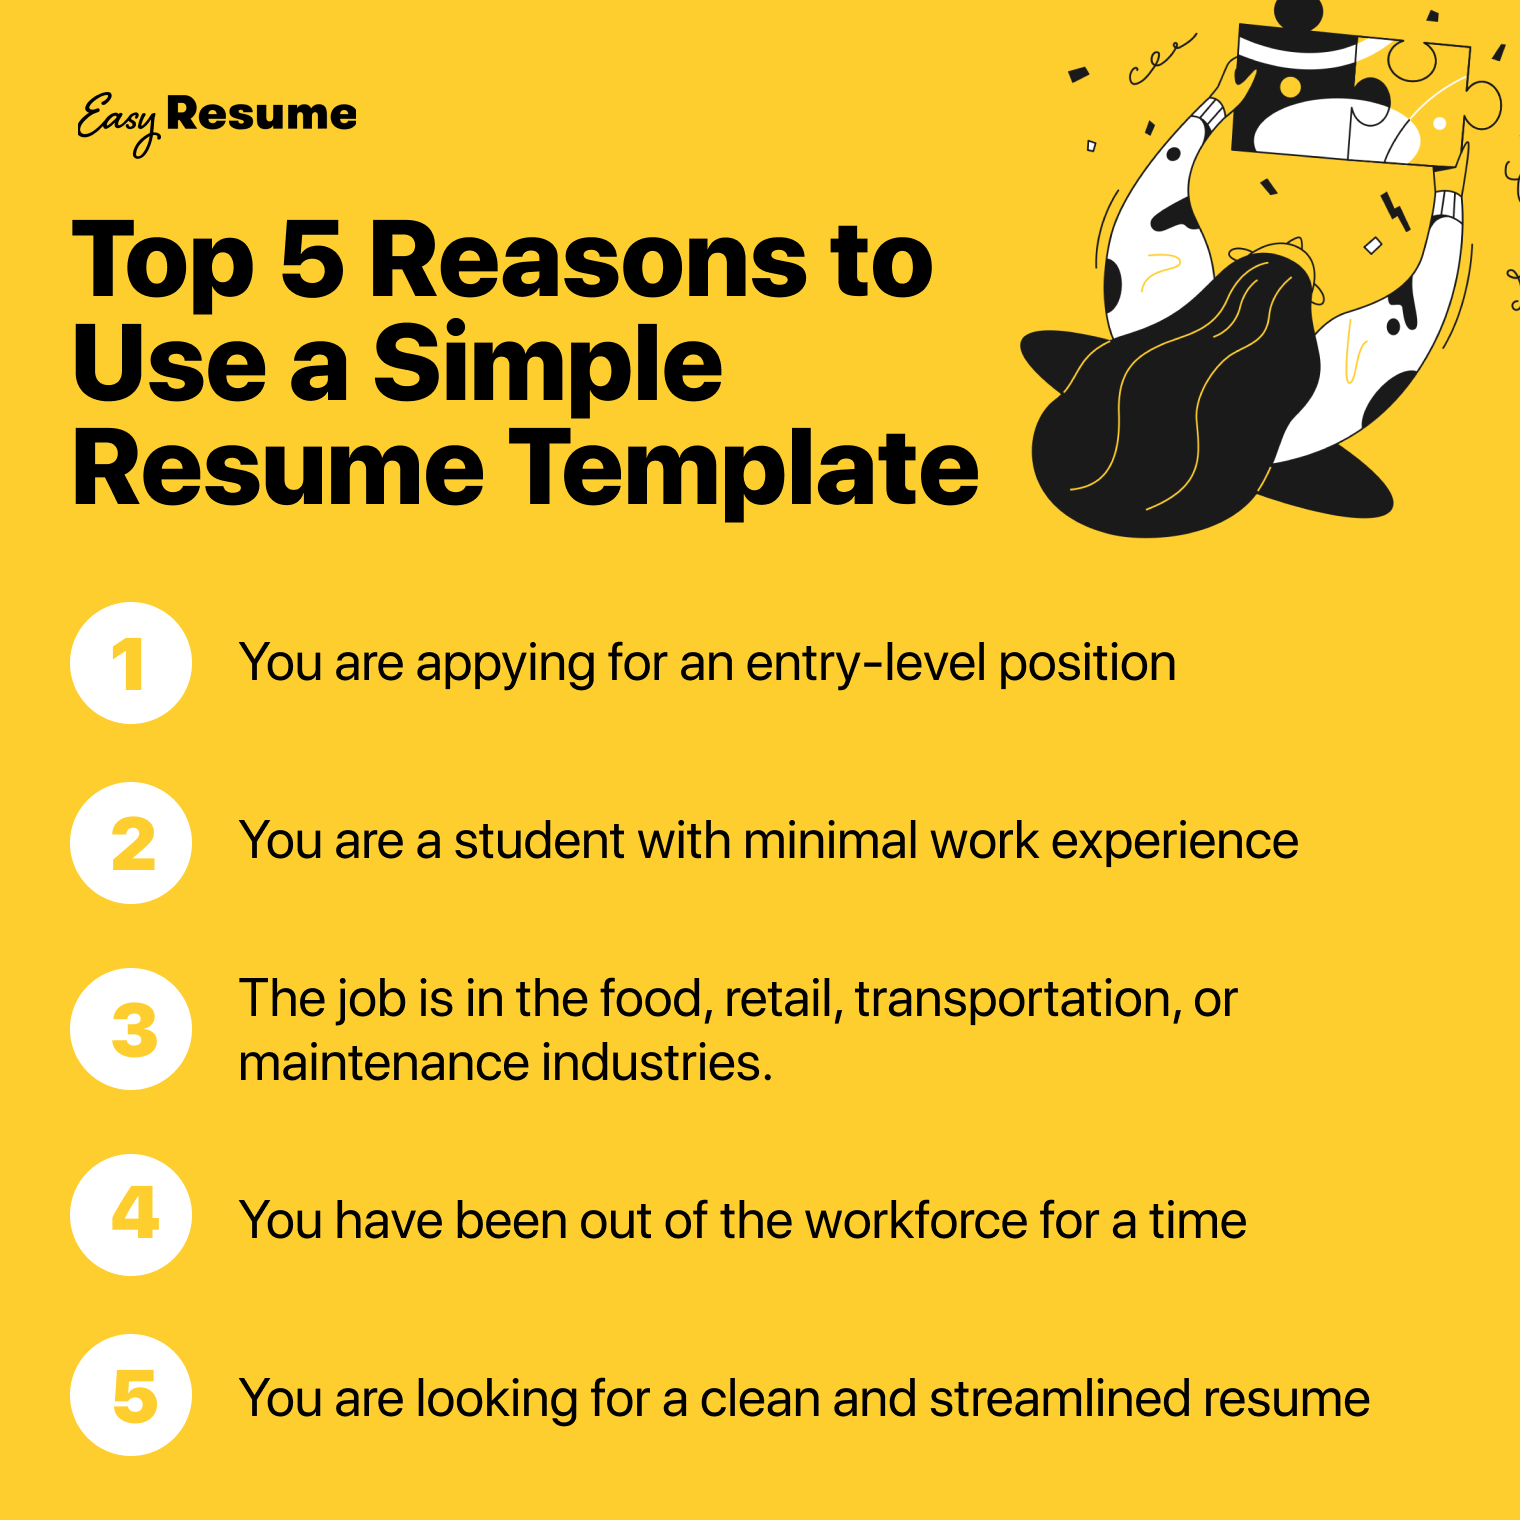 Simple Resume Templates For 2020 Easy Resume